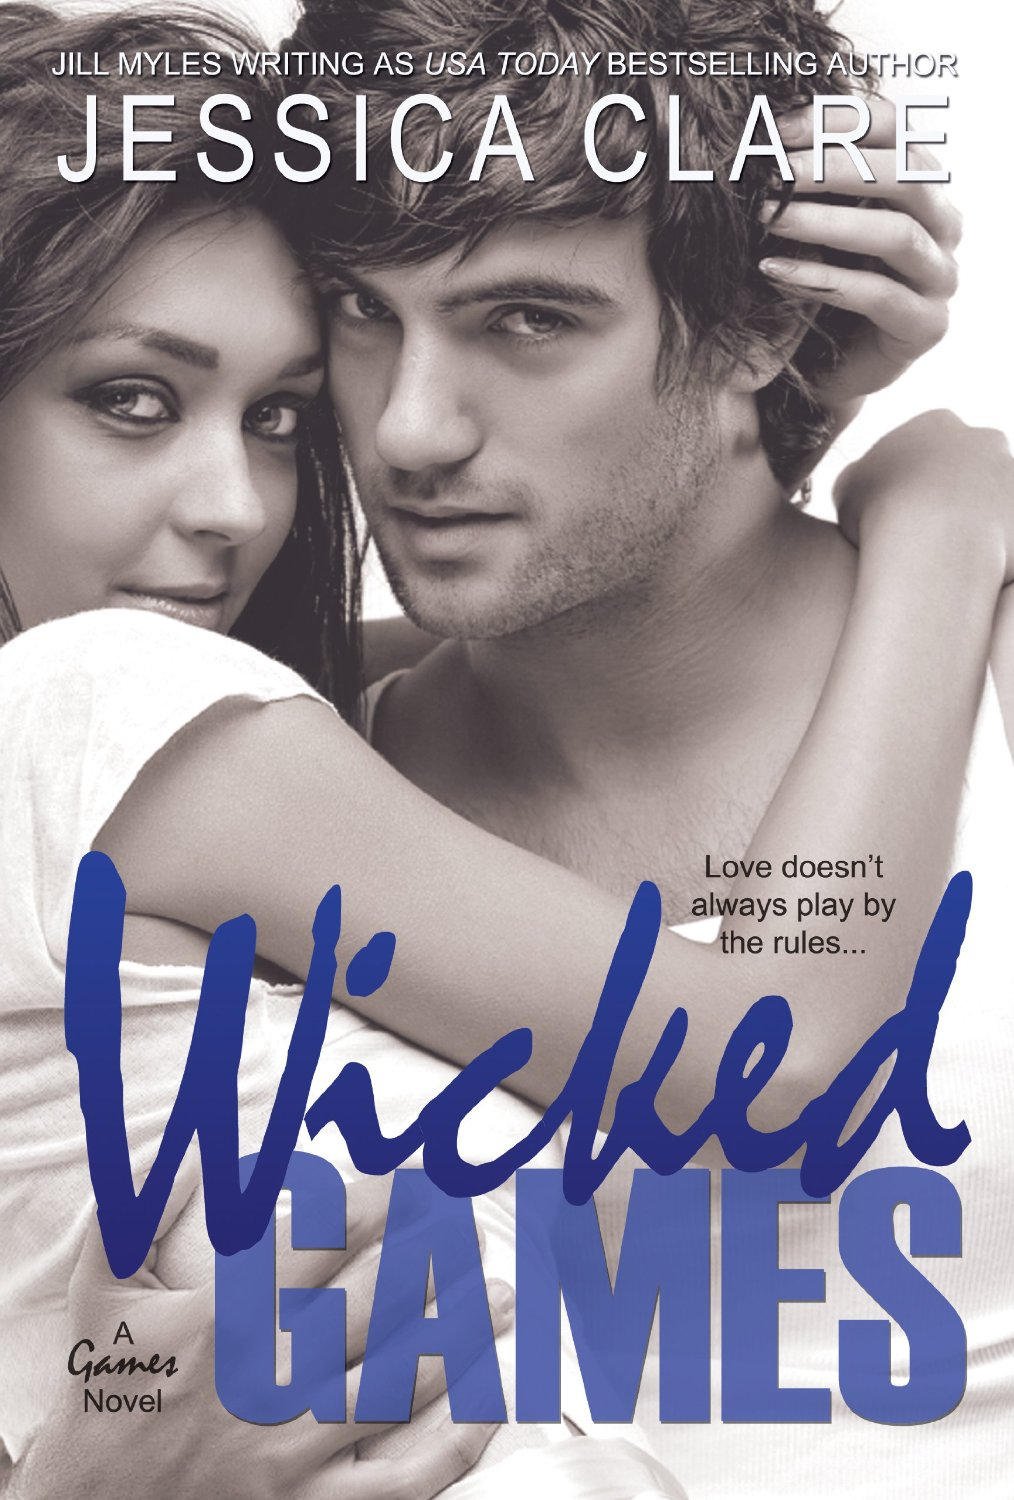 Wicked games jessica clare 1.jpg